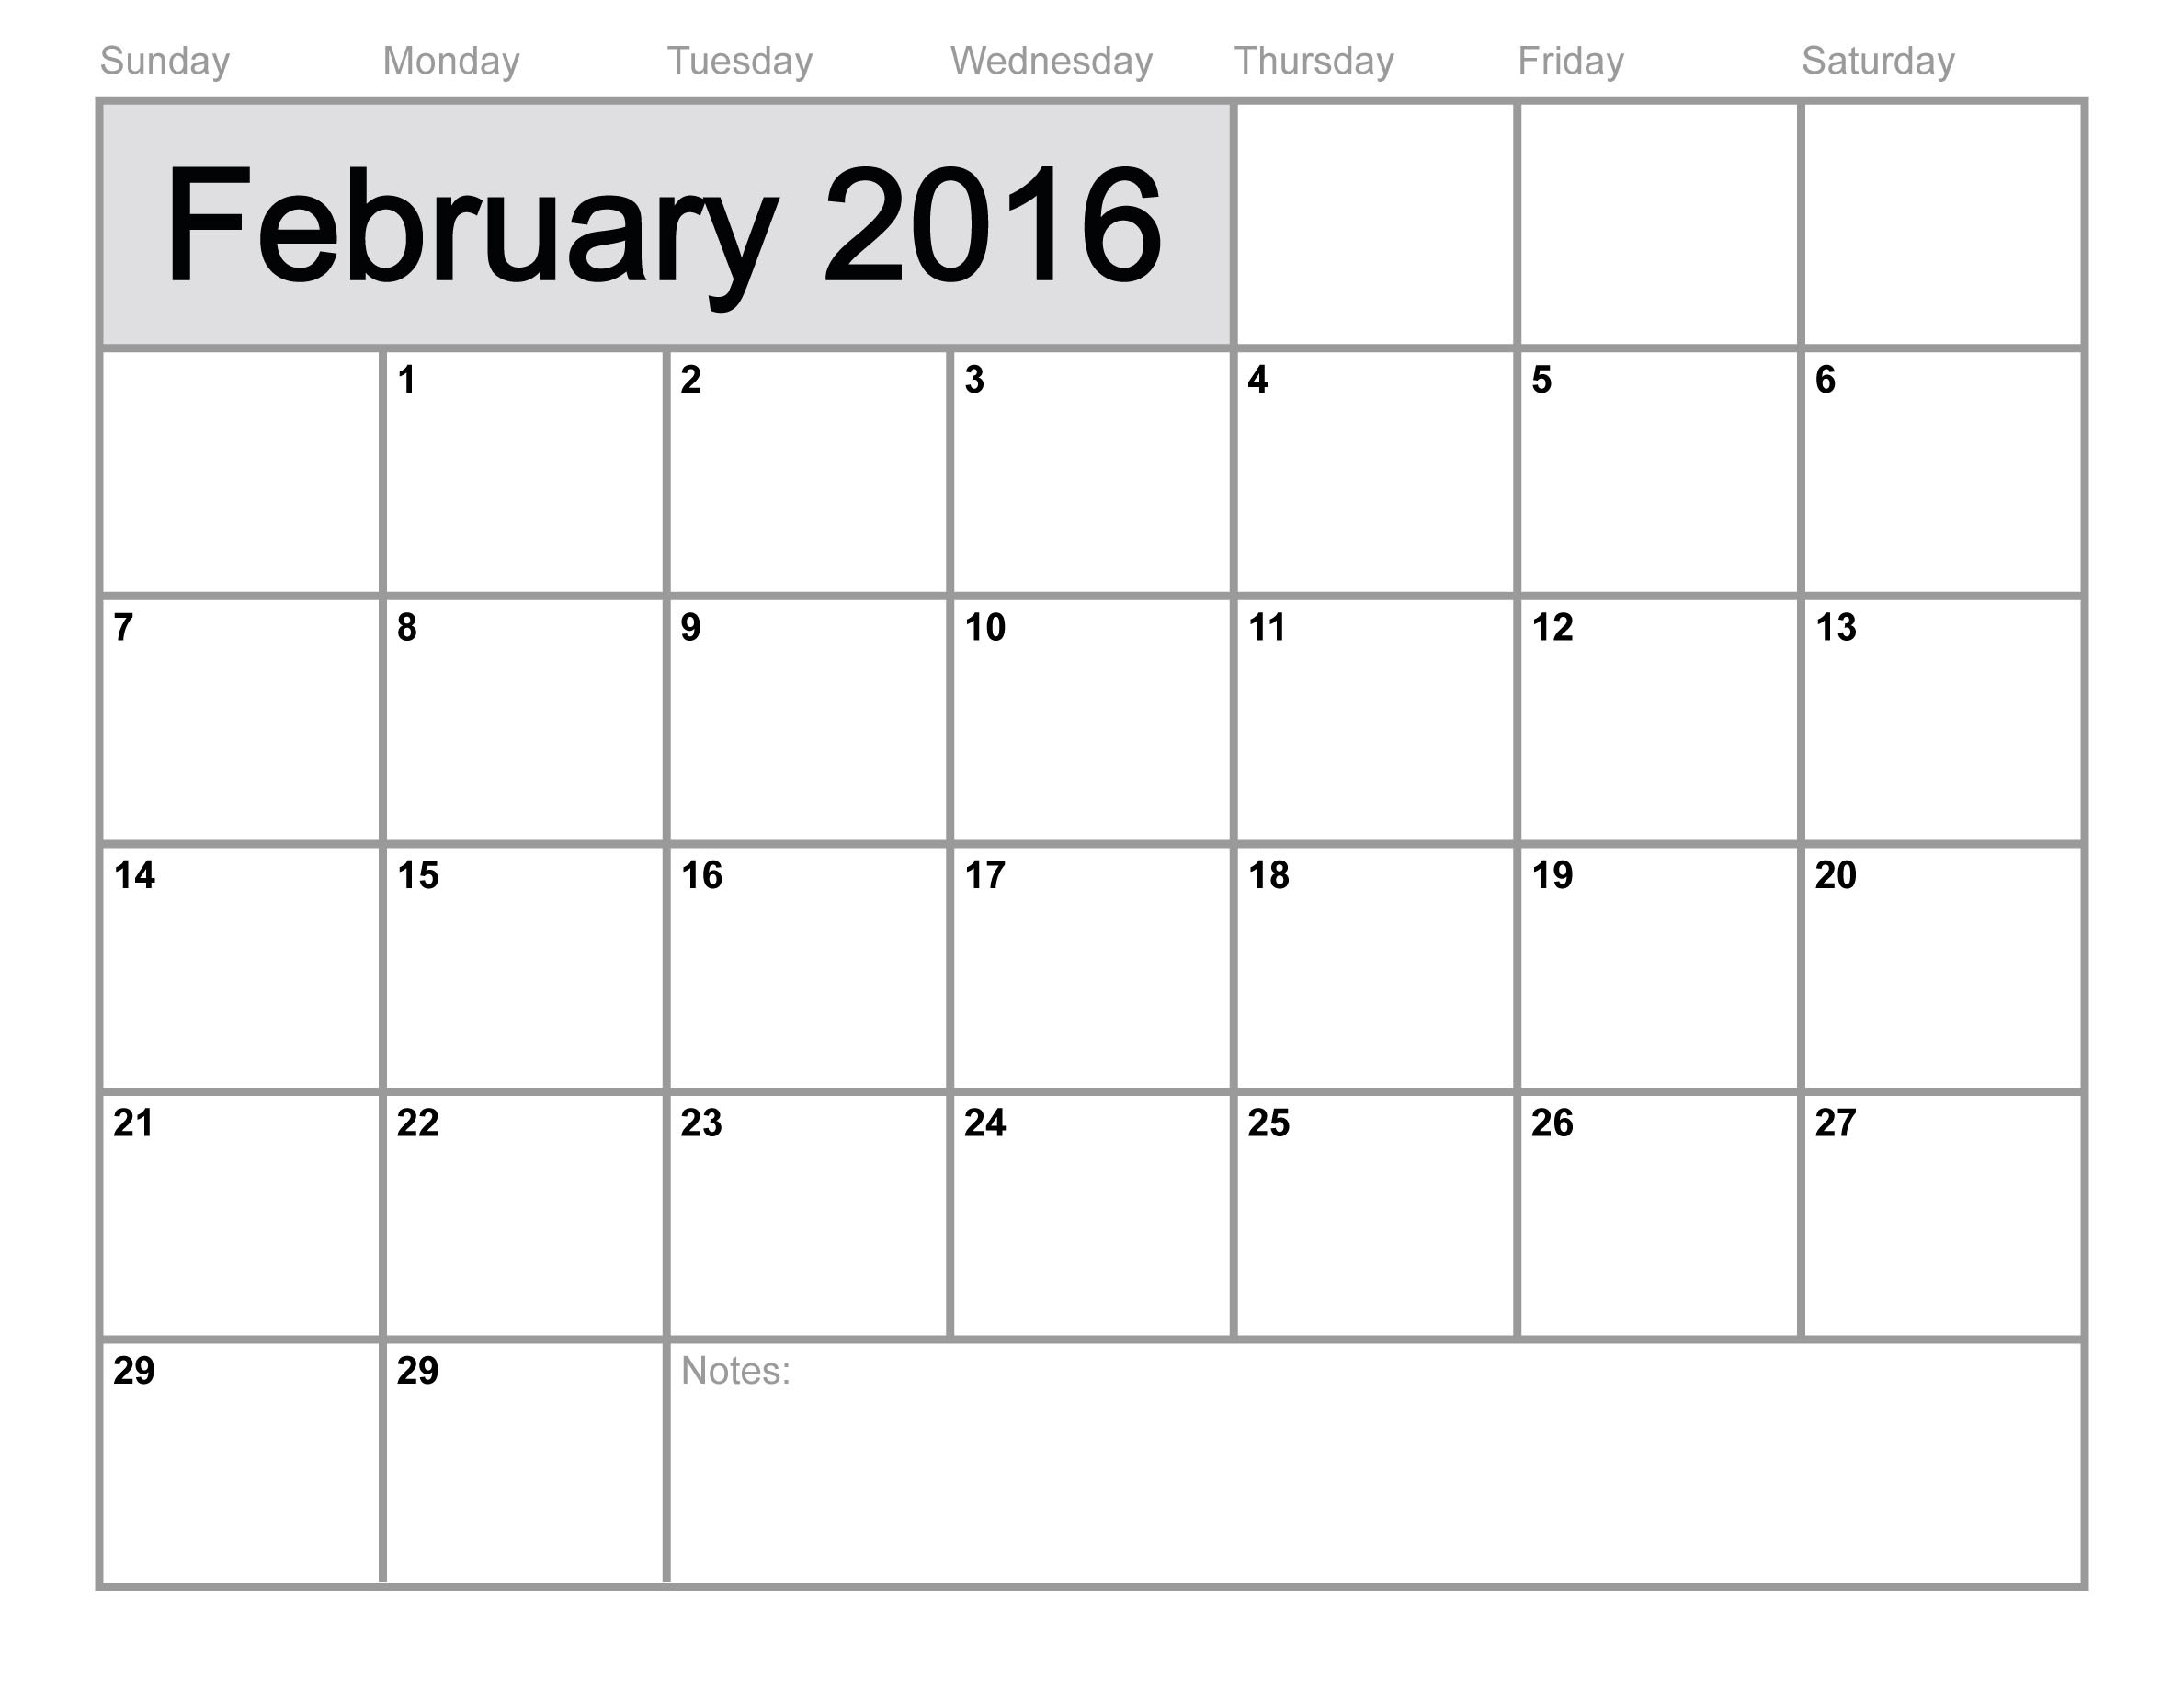 7 Images of 8 X 11 Printable Calendar February 2016